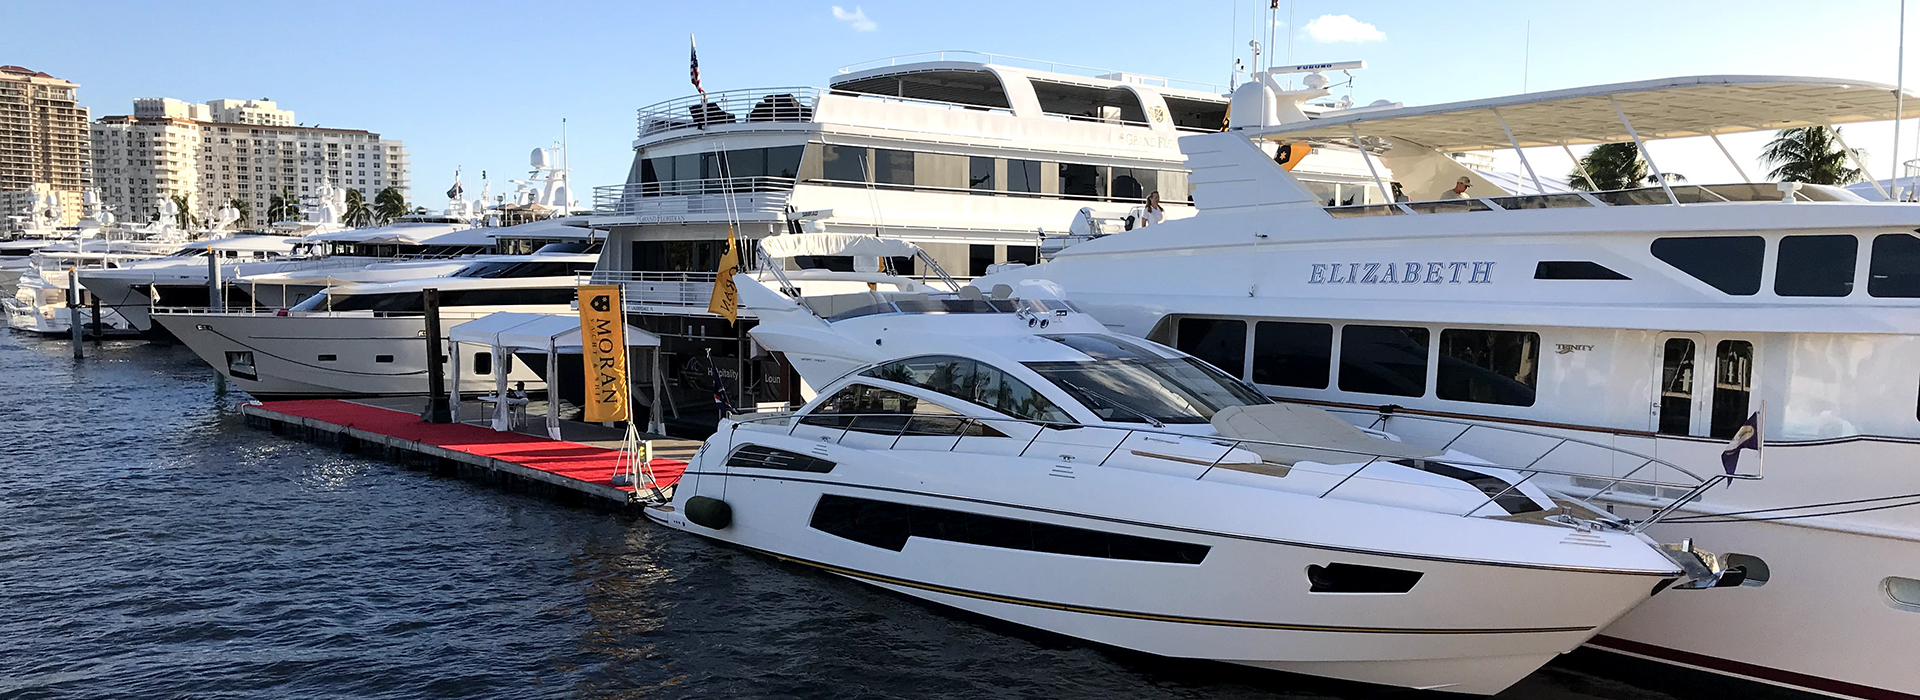 Fort Lauderdale International Boat Show Starmark International Spread